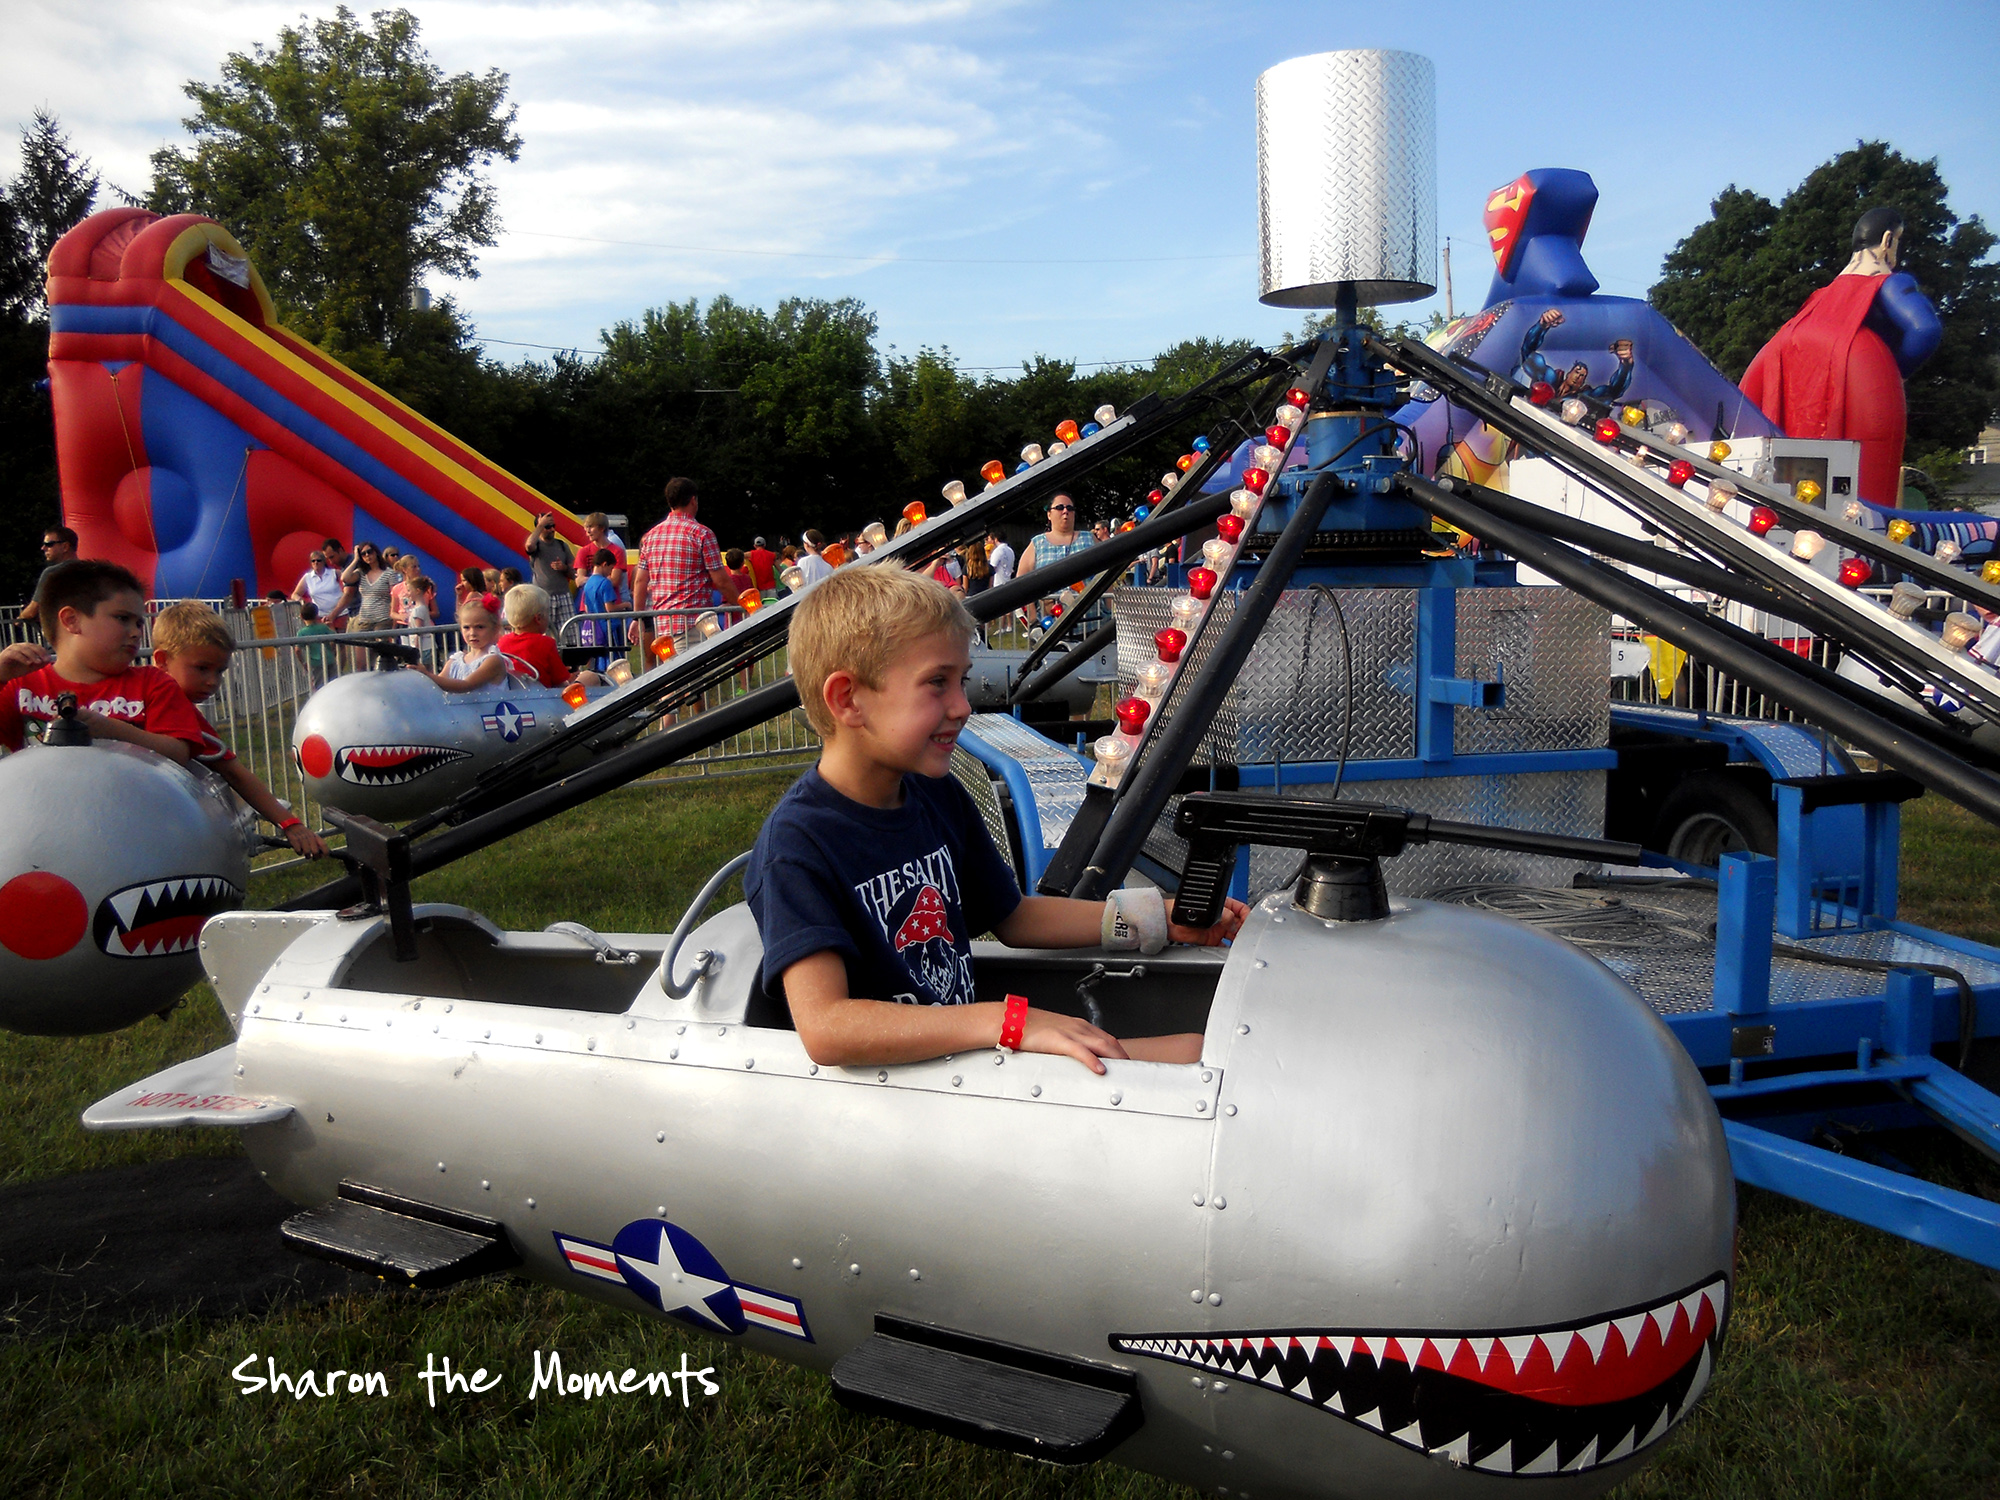 Hot Summer Day Enjoying a Flying Creature at School Festival|Sharon the Moments blog